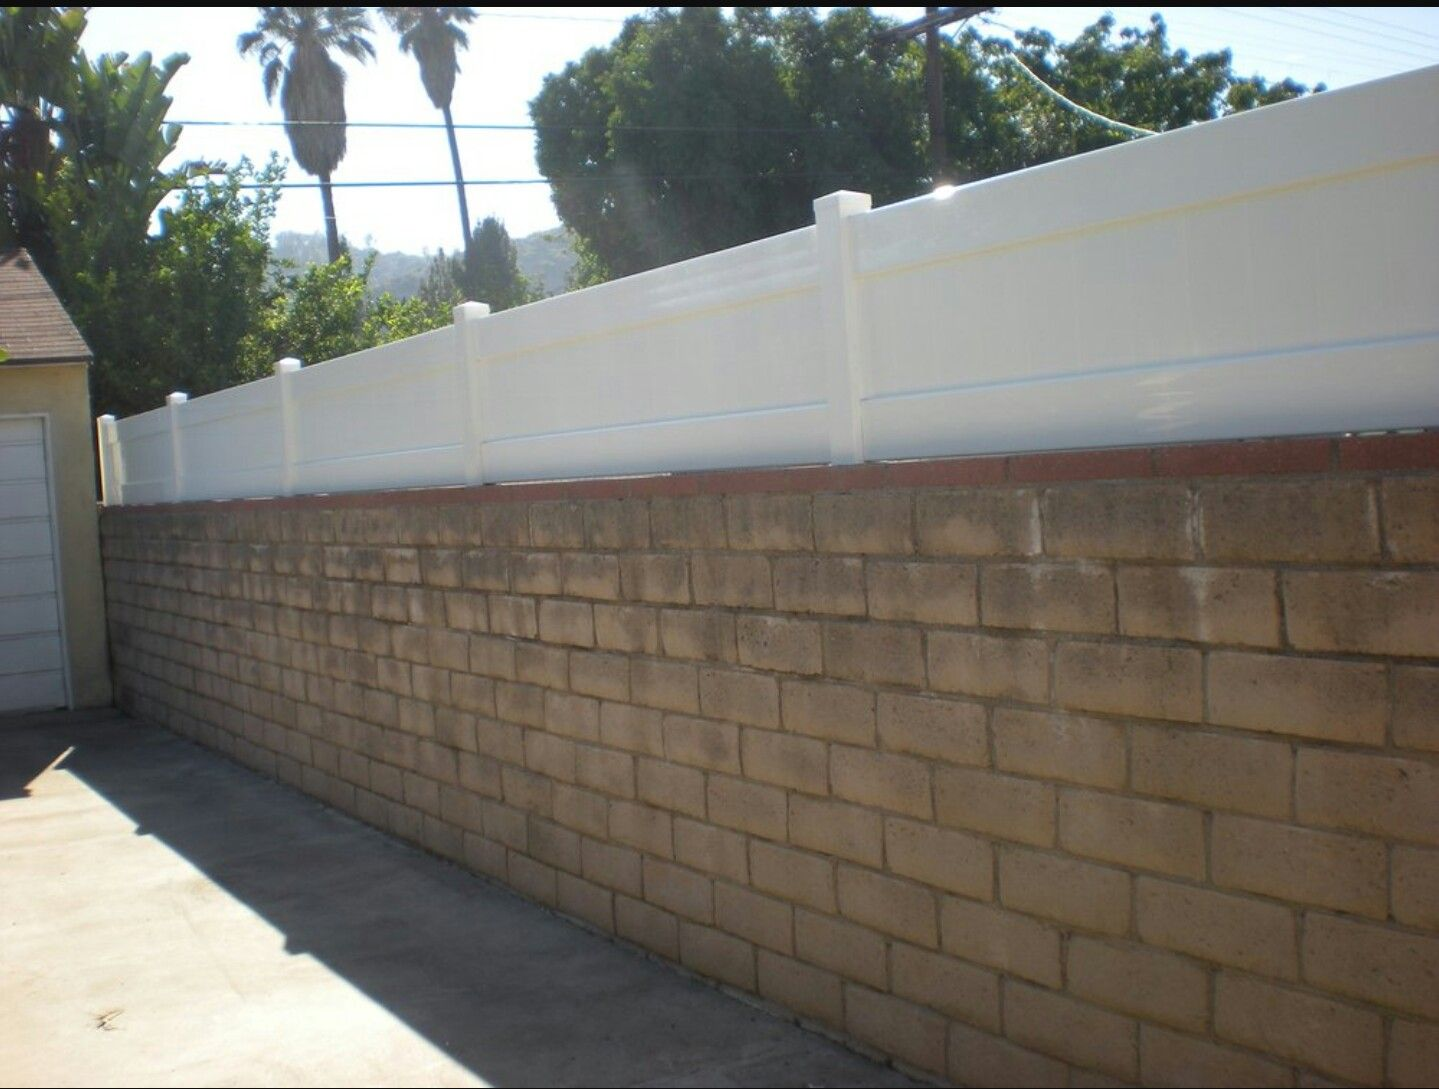 Block Wall Fence Toppers Block Wall Fence Pinterest Block - Cinder block wall fence ideas